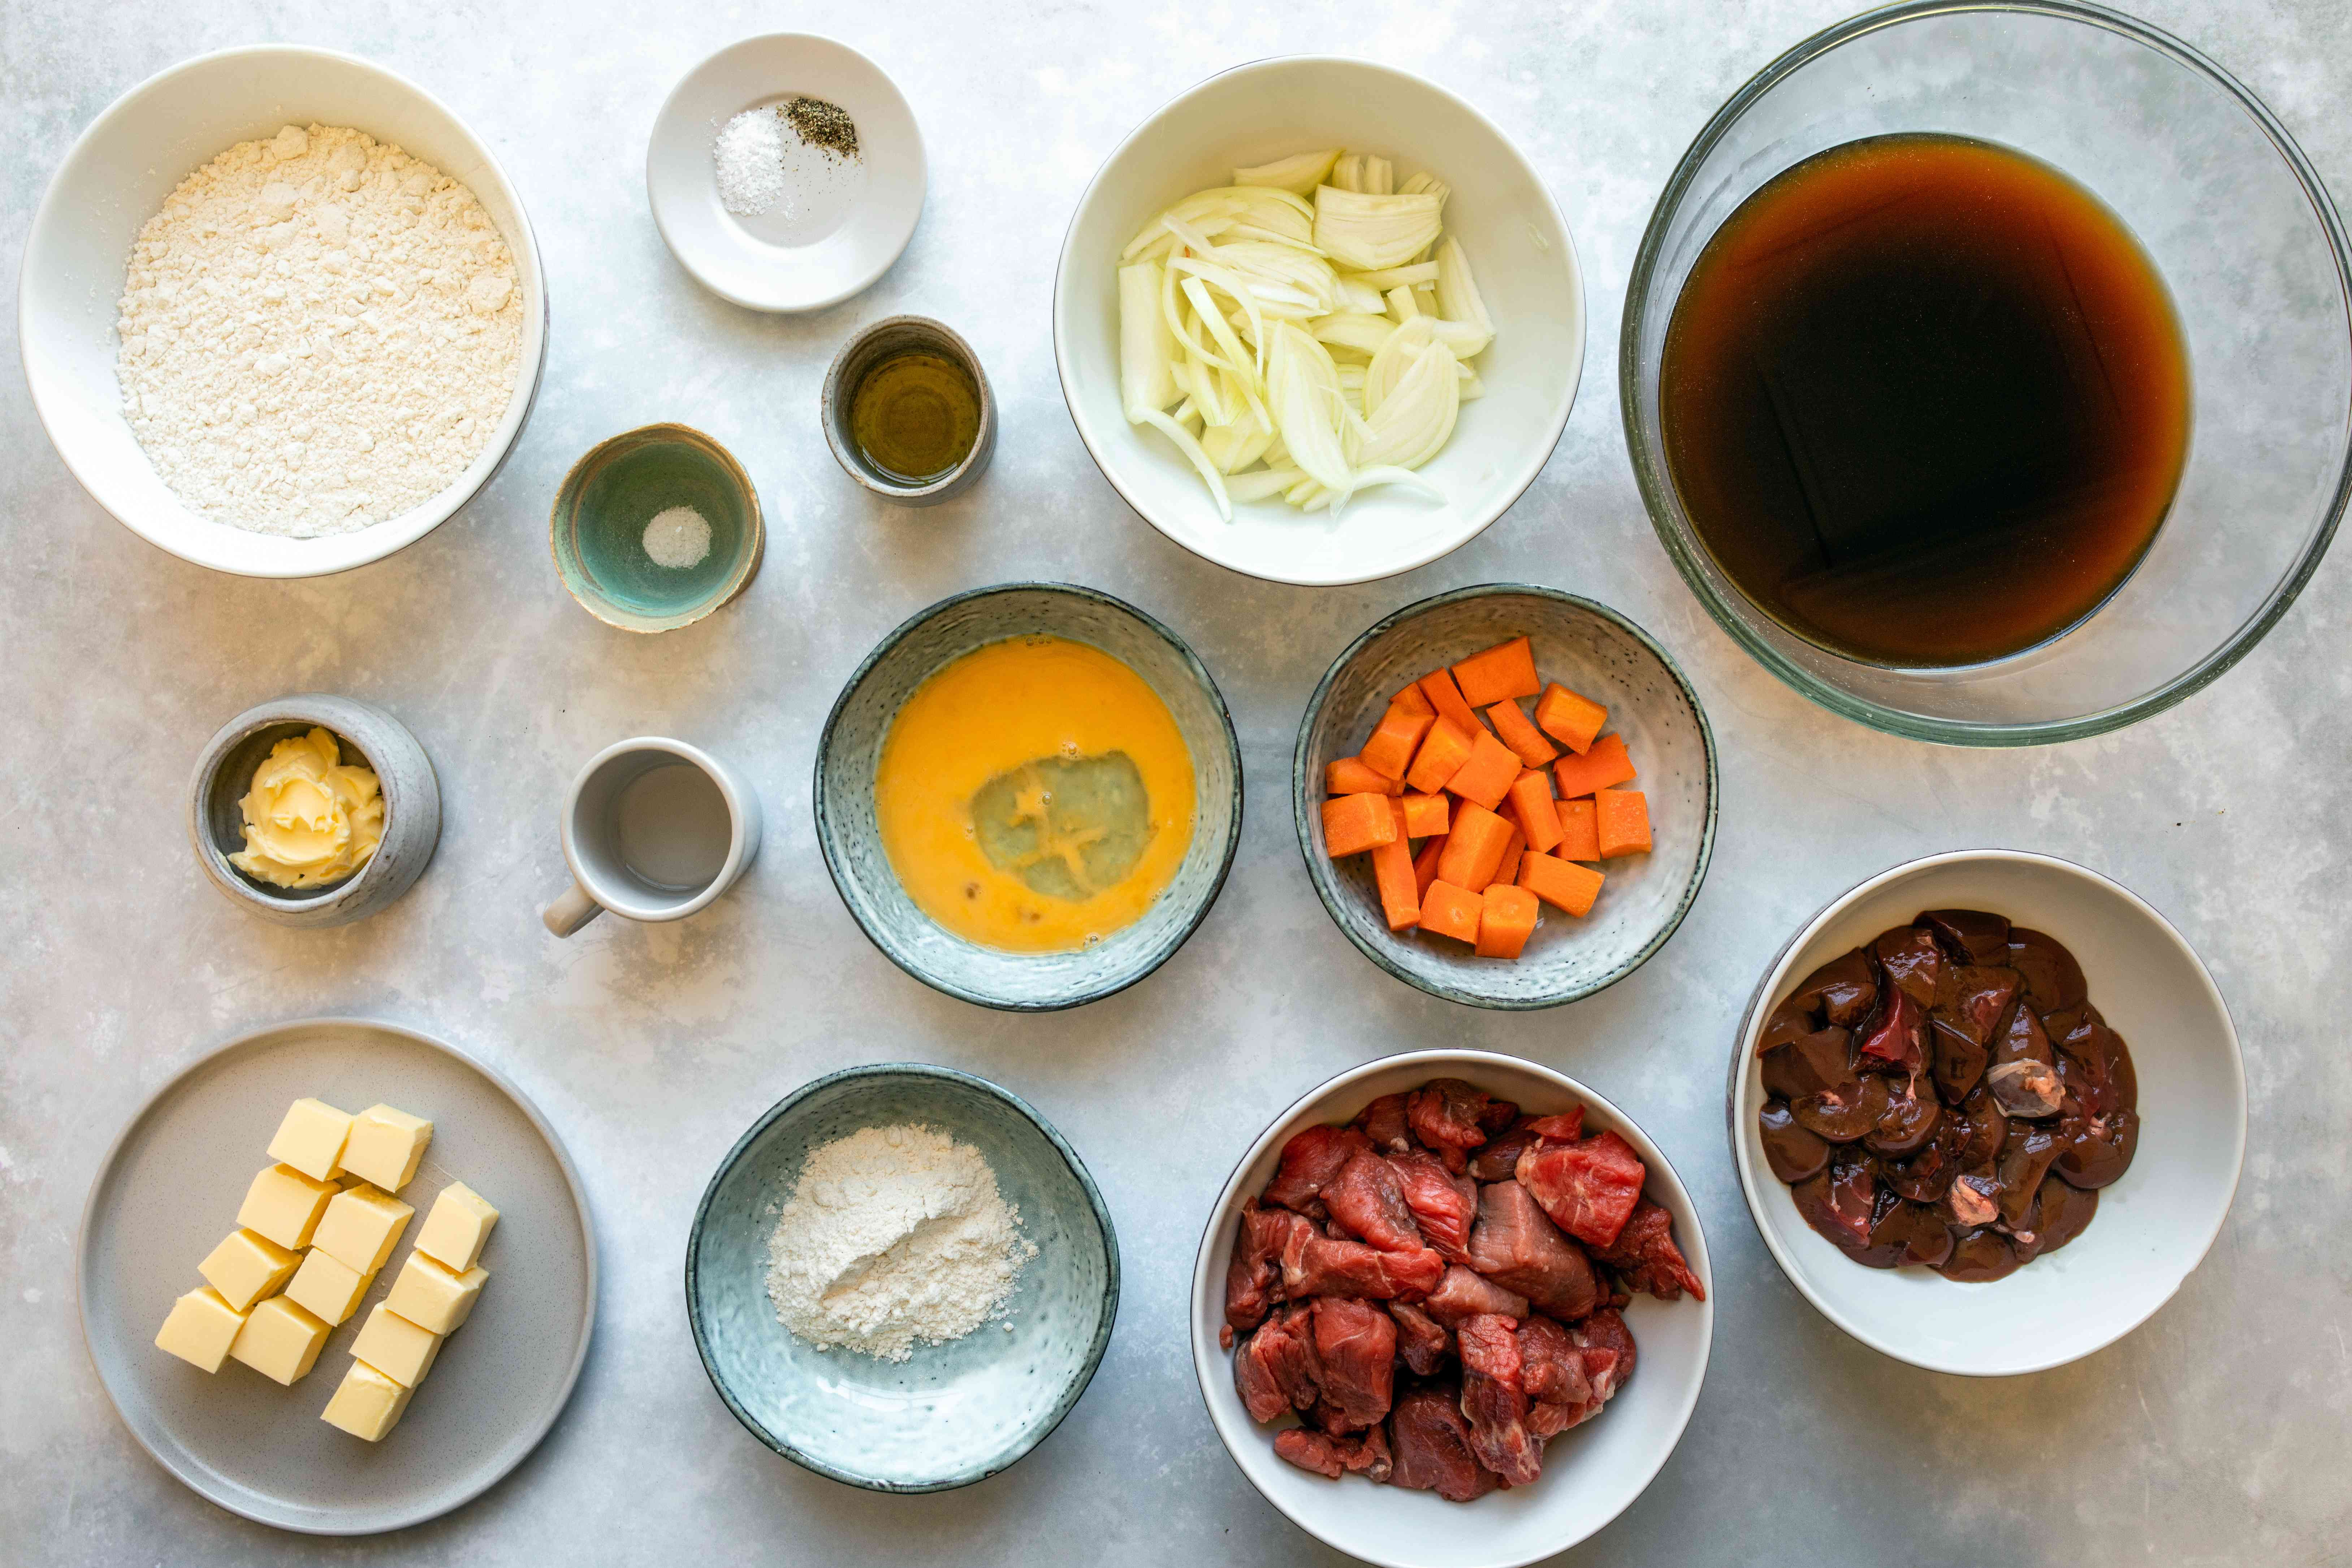 Ingredients for steak and kidney pie filling